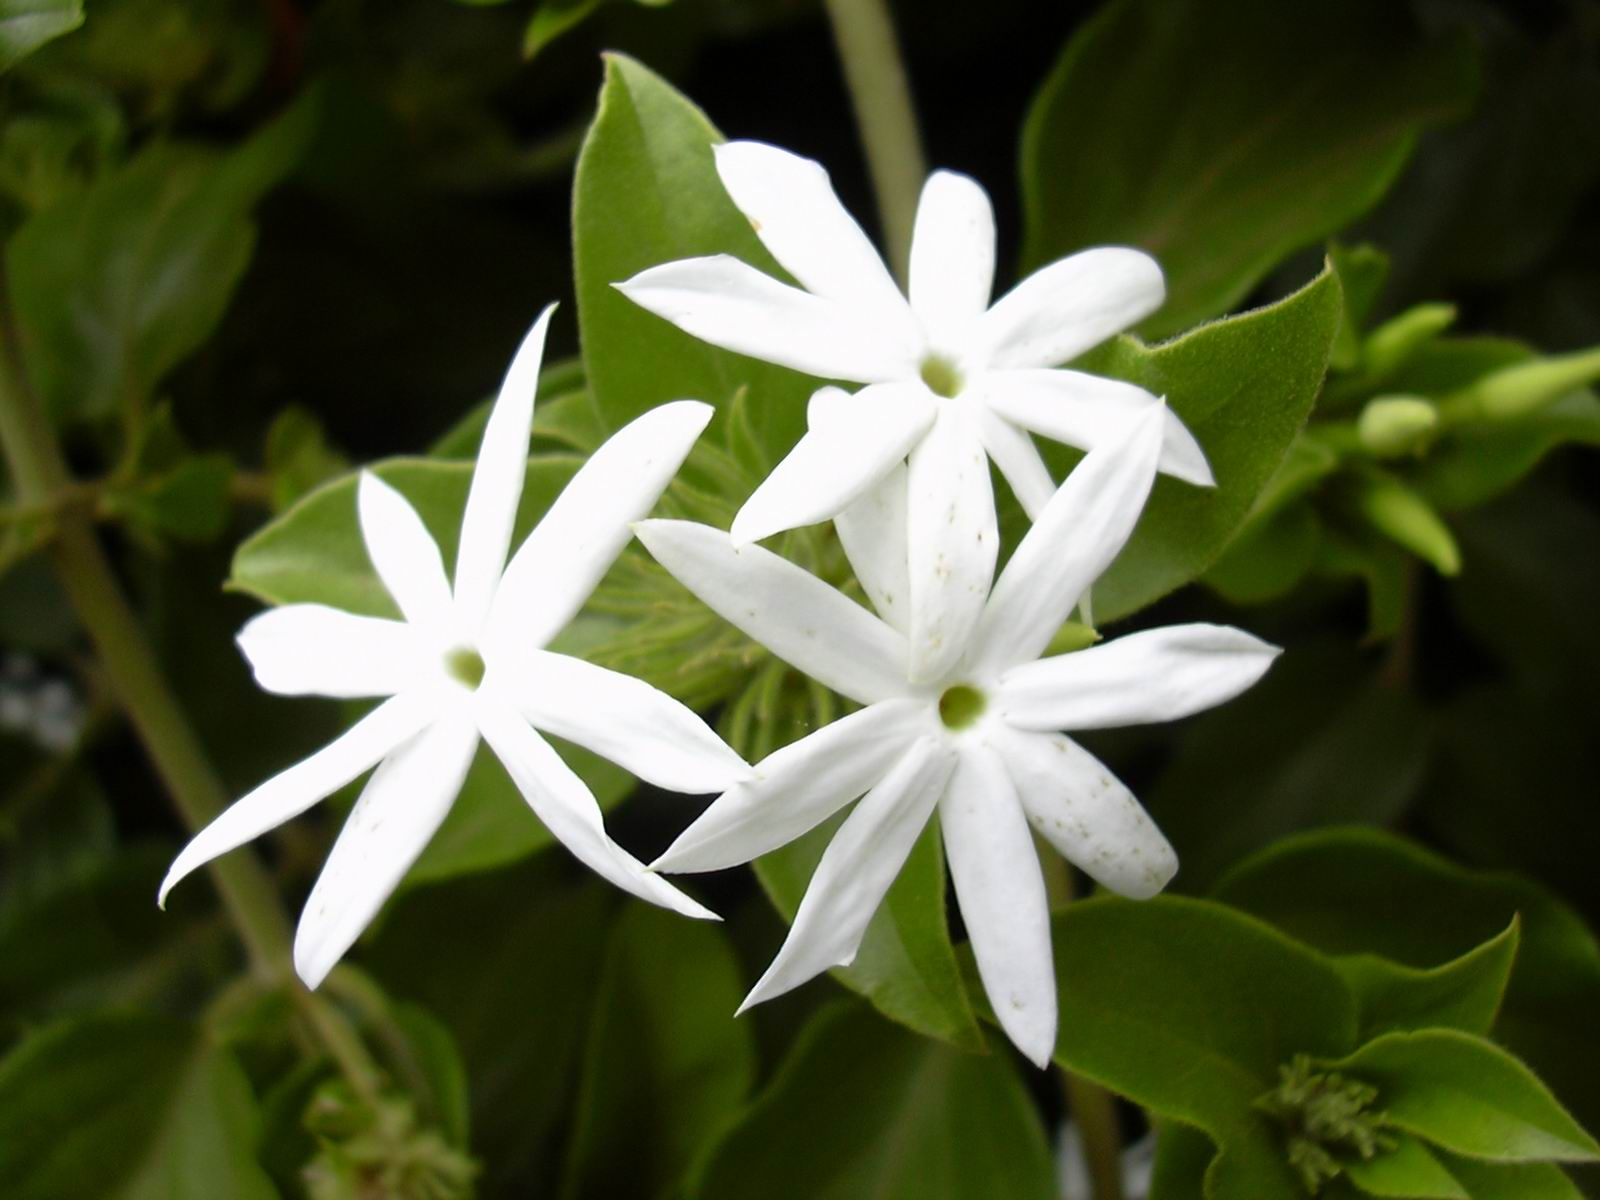 Jasminum-Multiflorum - Eau Lovely - Rachel McCann